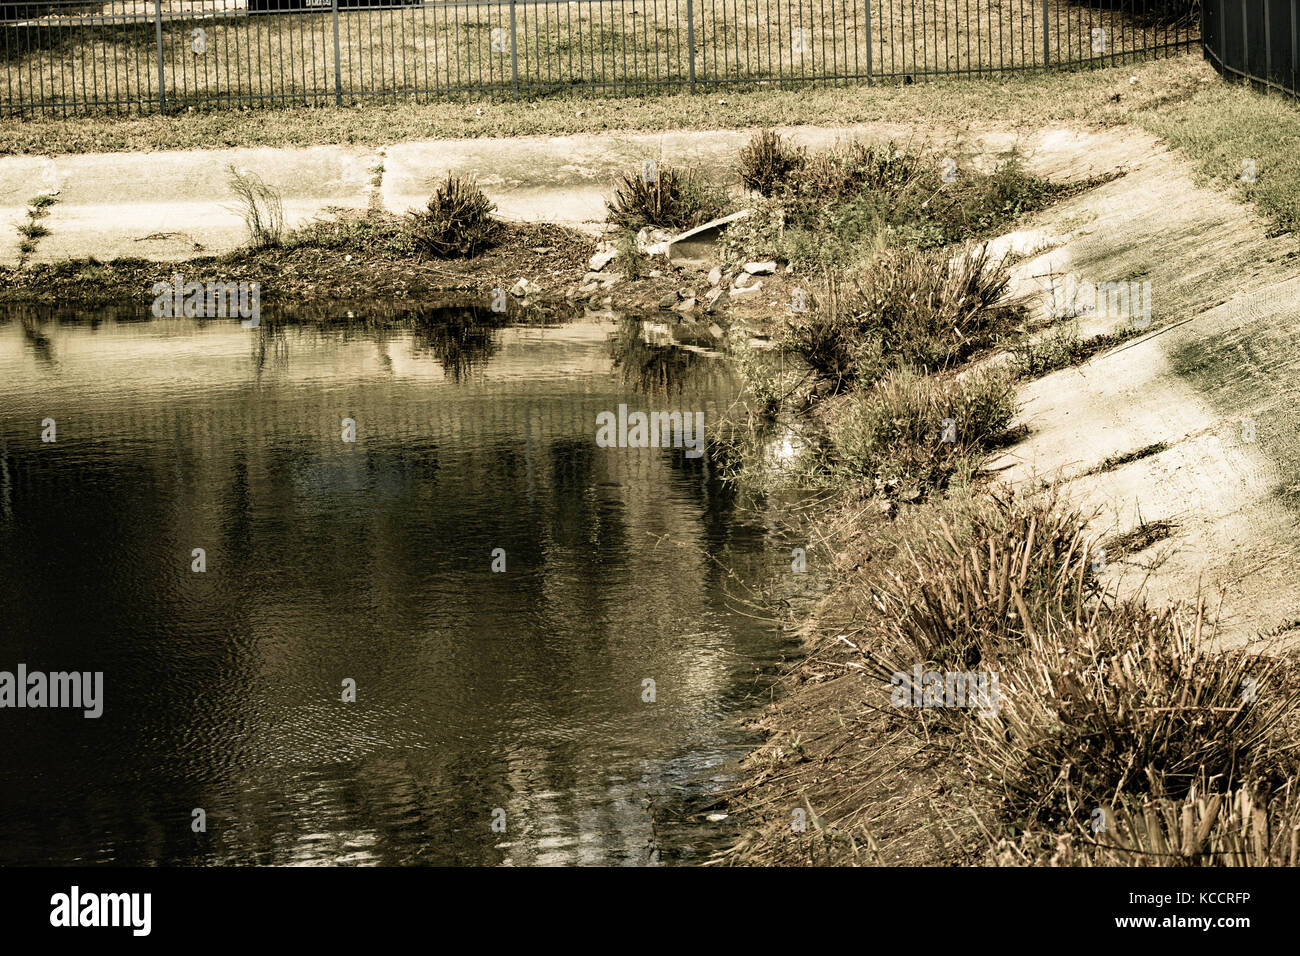 Creek - Stock Image